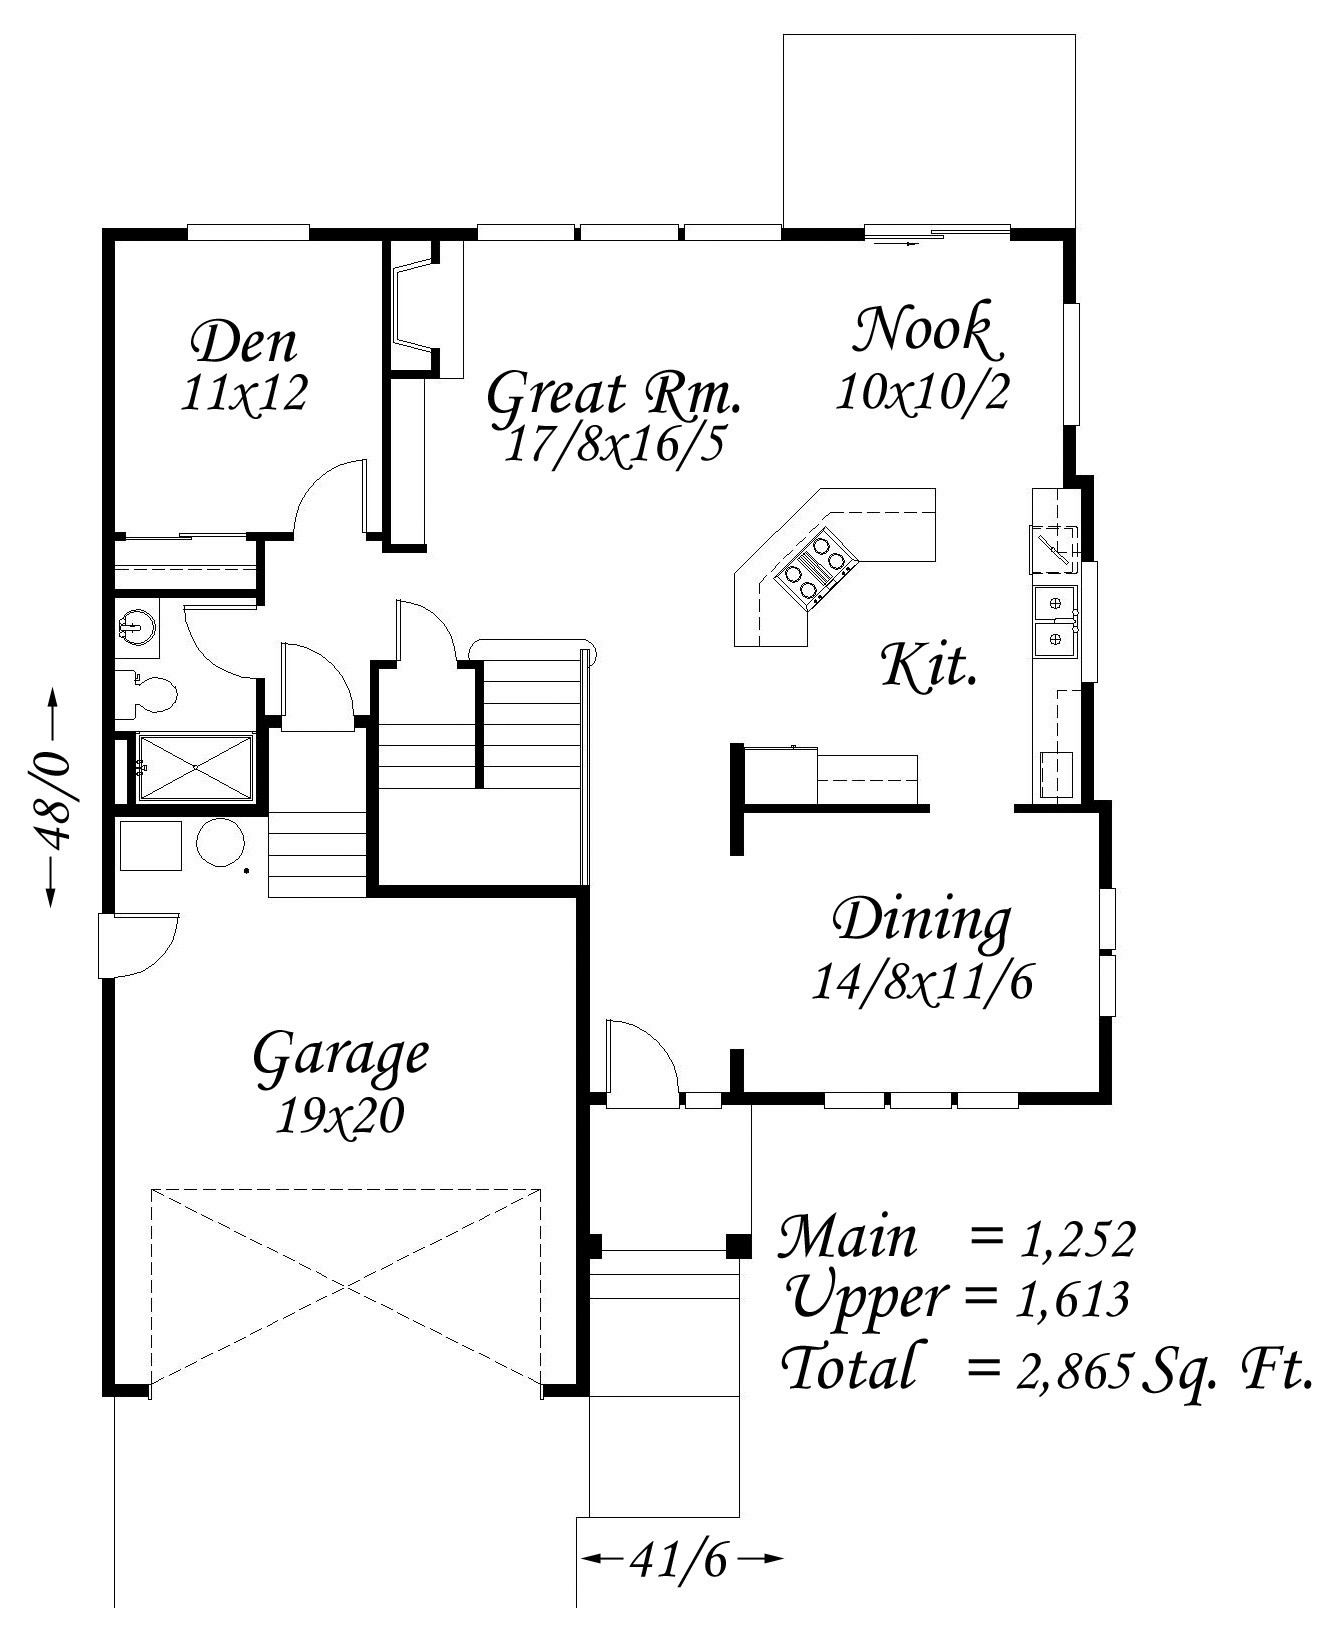 4500 Square Feet Tropical House On A Very Small Lot But: Blue Plains House Plan